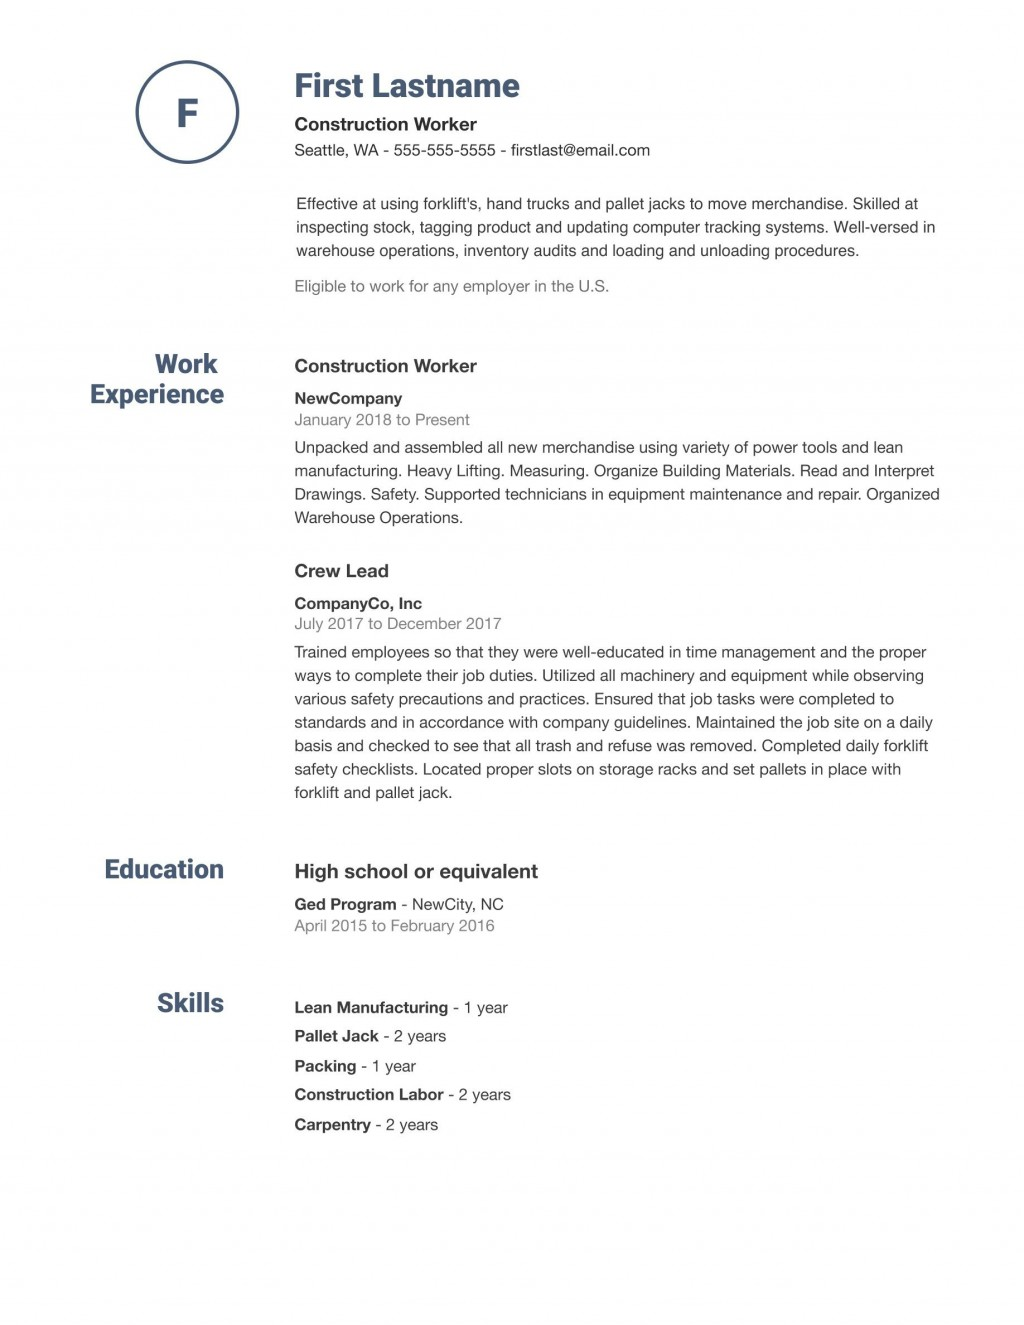 005 Striking Professional Resume Template Example High Resolution  Examples Layout Cv Writing FormatLarge